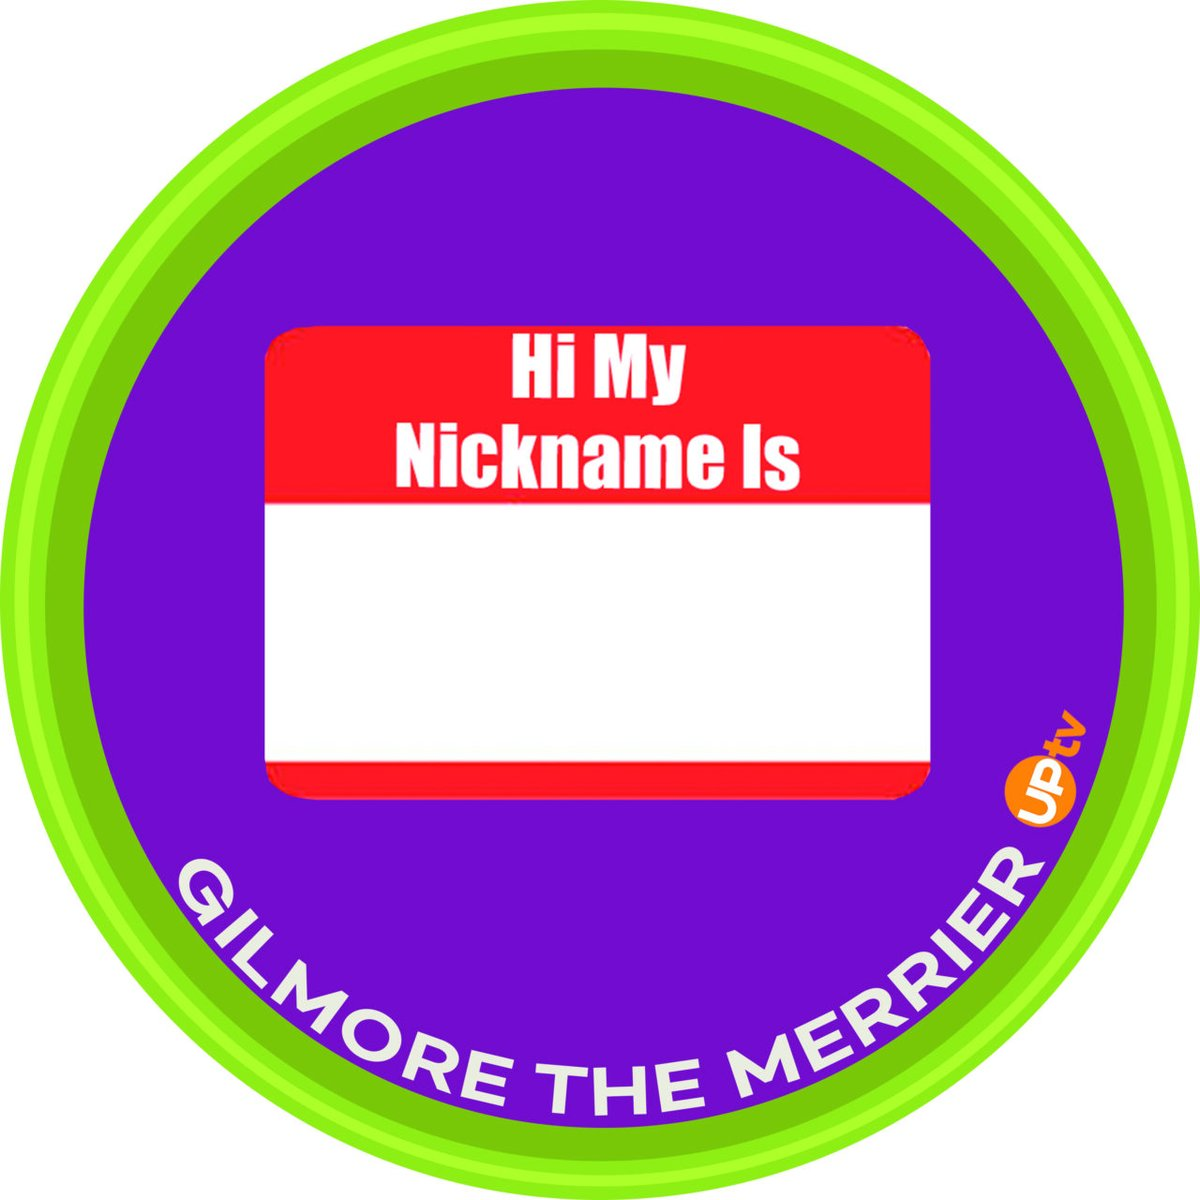 Congratulations to our @UPtv #GilMORETheMerrier #GTMcontest52 trivia winner @LexieMccreary! You deserve this badge for a job well done!